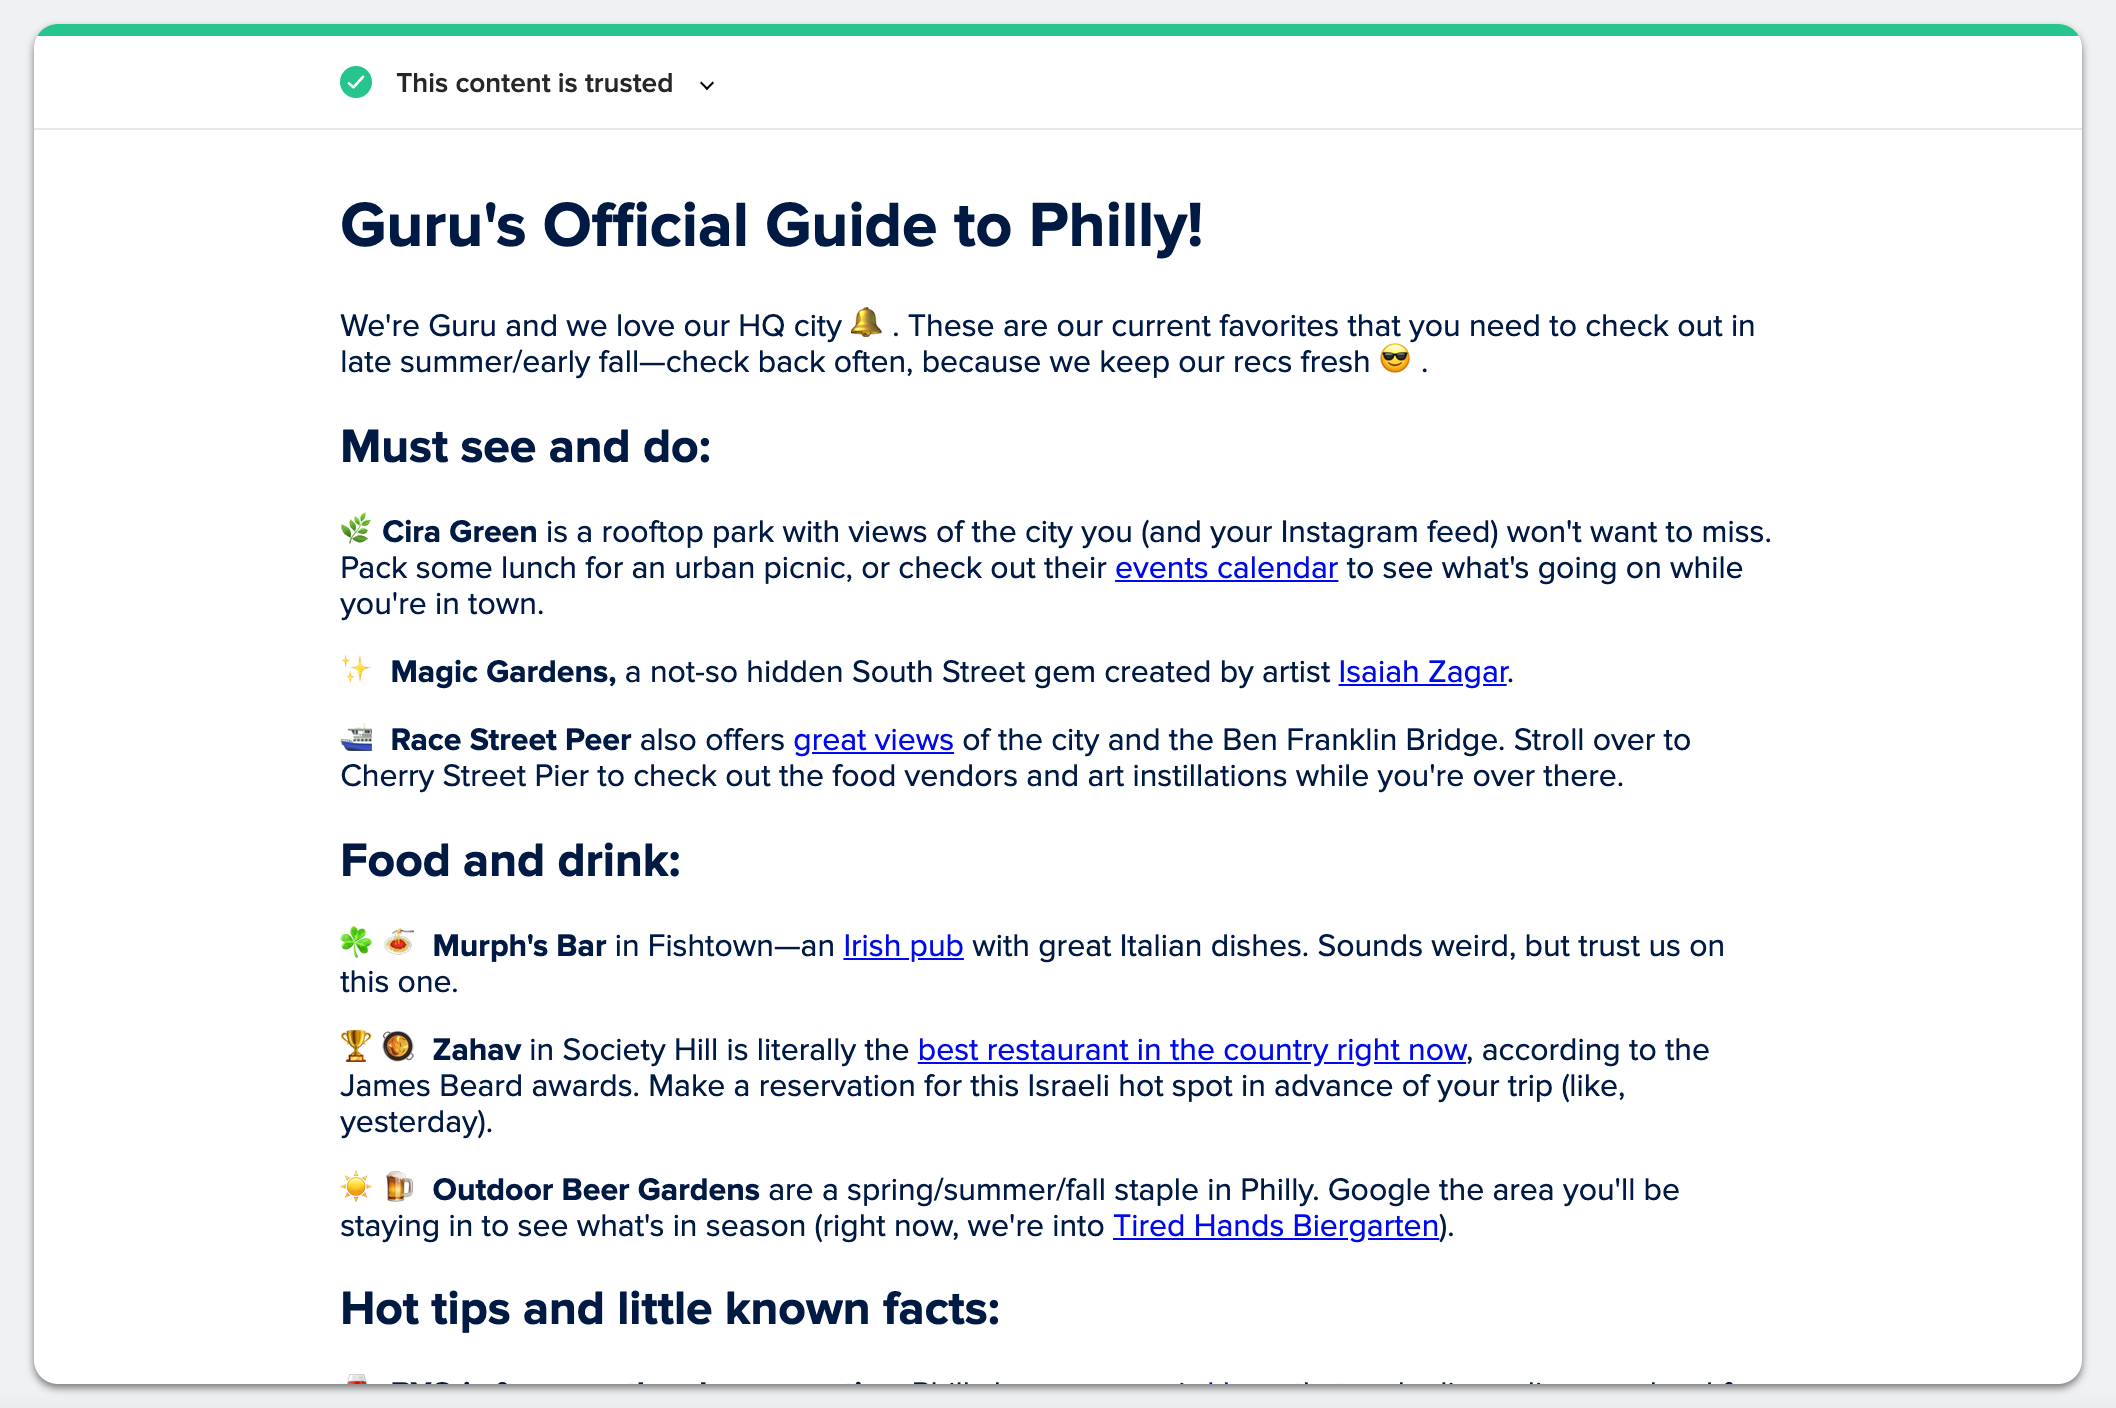 Guru's Guide to Philly